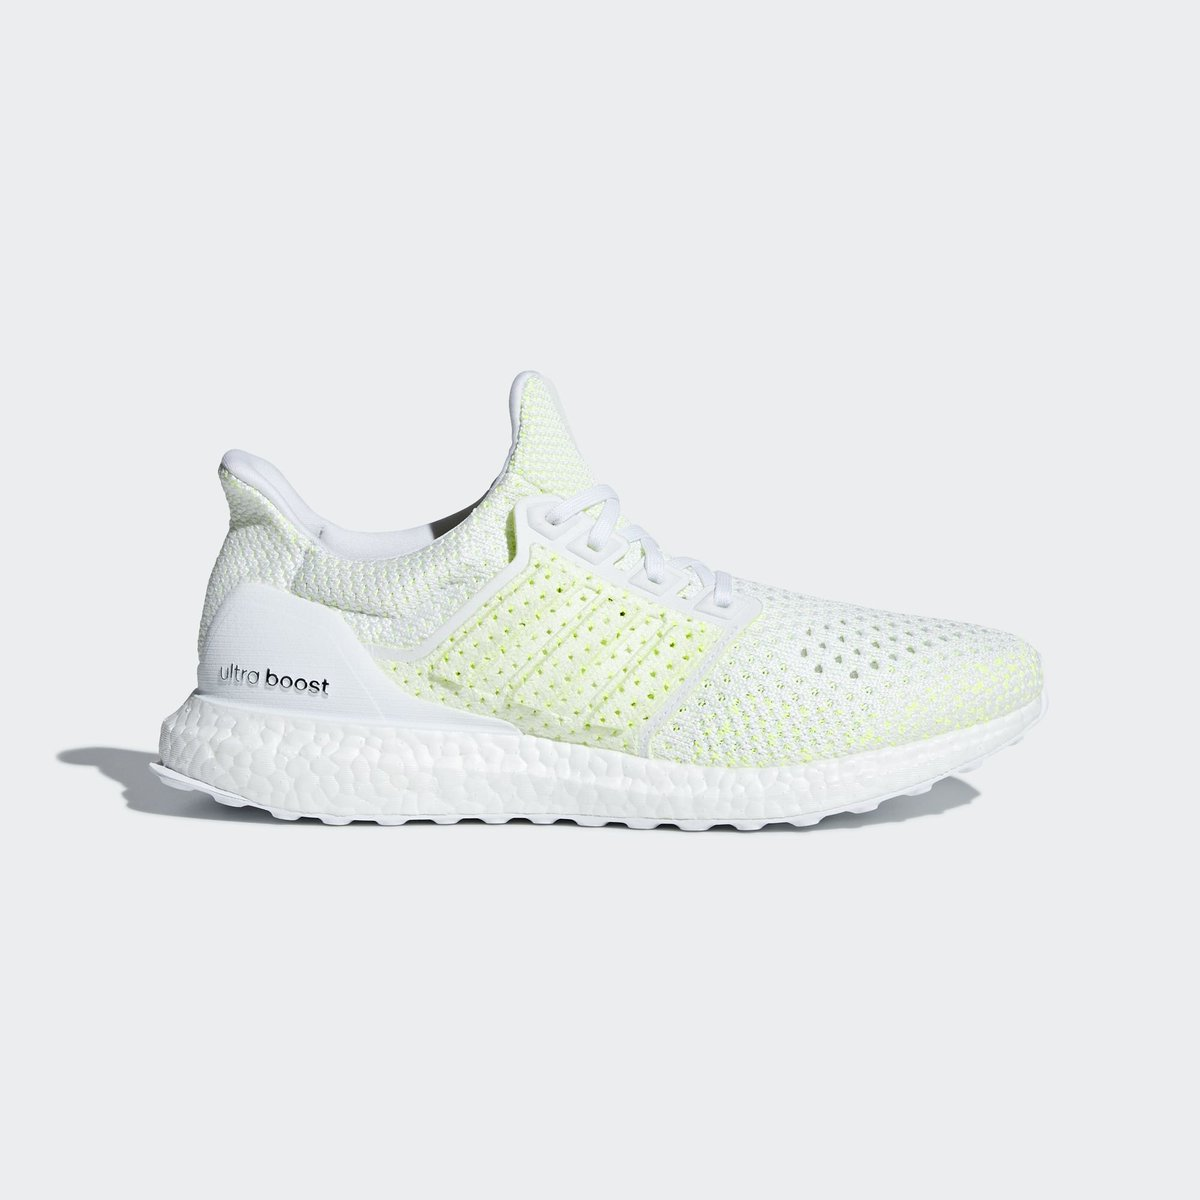 c9e52affaa490 Official Images of adidas Ultra Boost Clima  White Solar Yellow  releasing  on June 14thpic.twitter.com u5lFqu9FBa